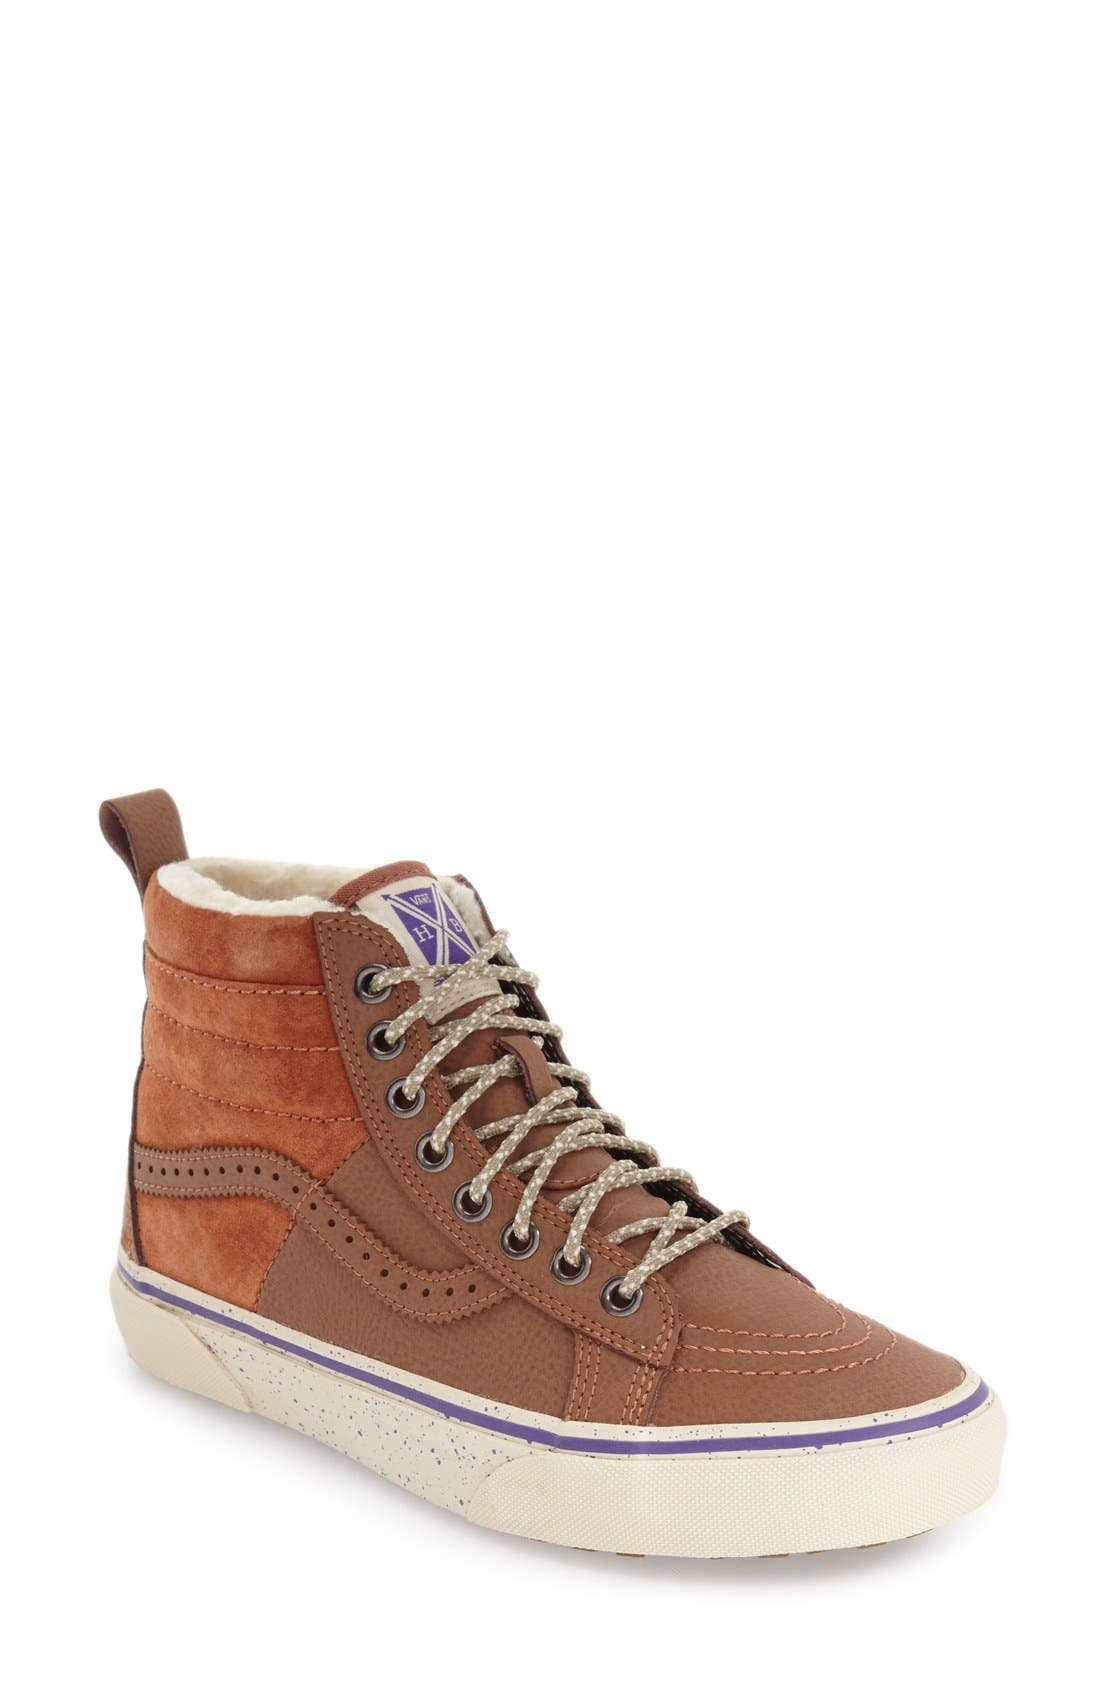 Alternate Image 1 Selected - Vans Hana Beaman – SK8-Hi 46 MTE Water Resistant Sneaker (Women)